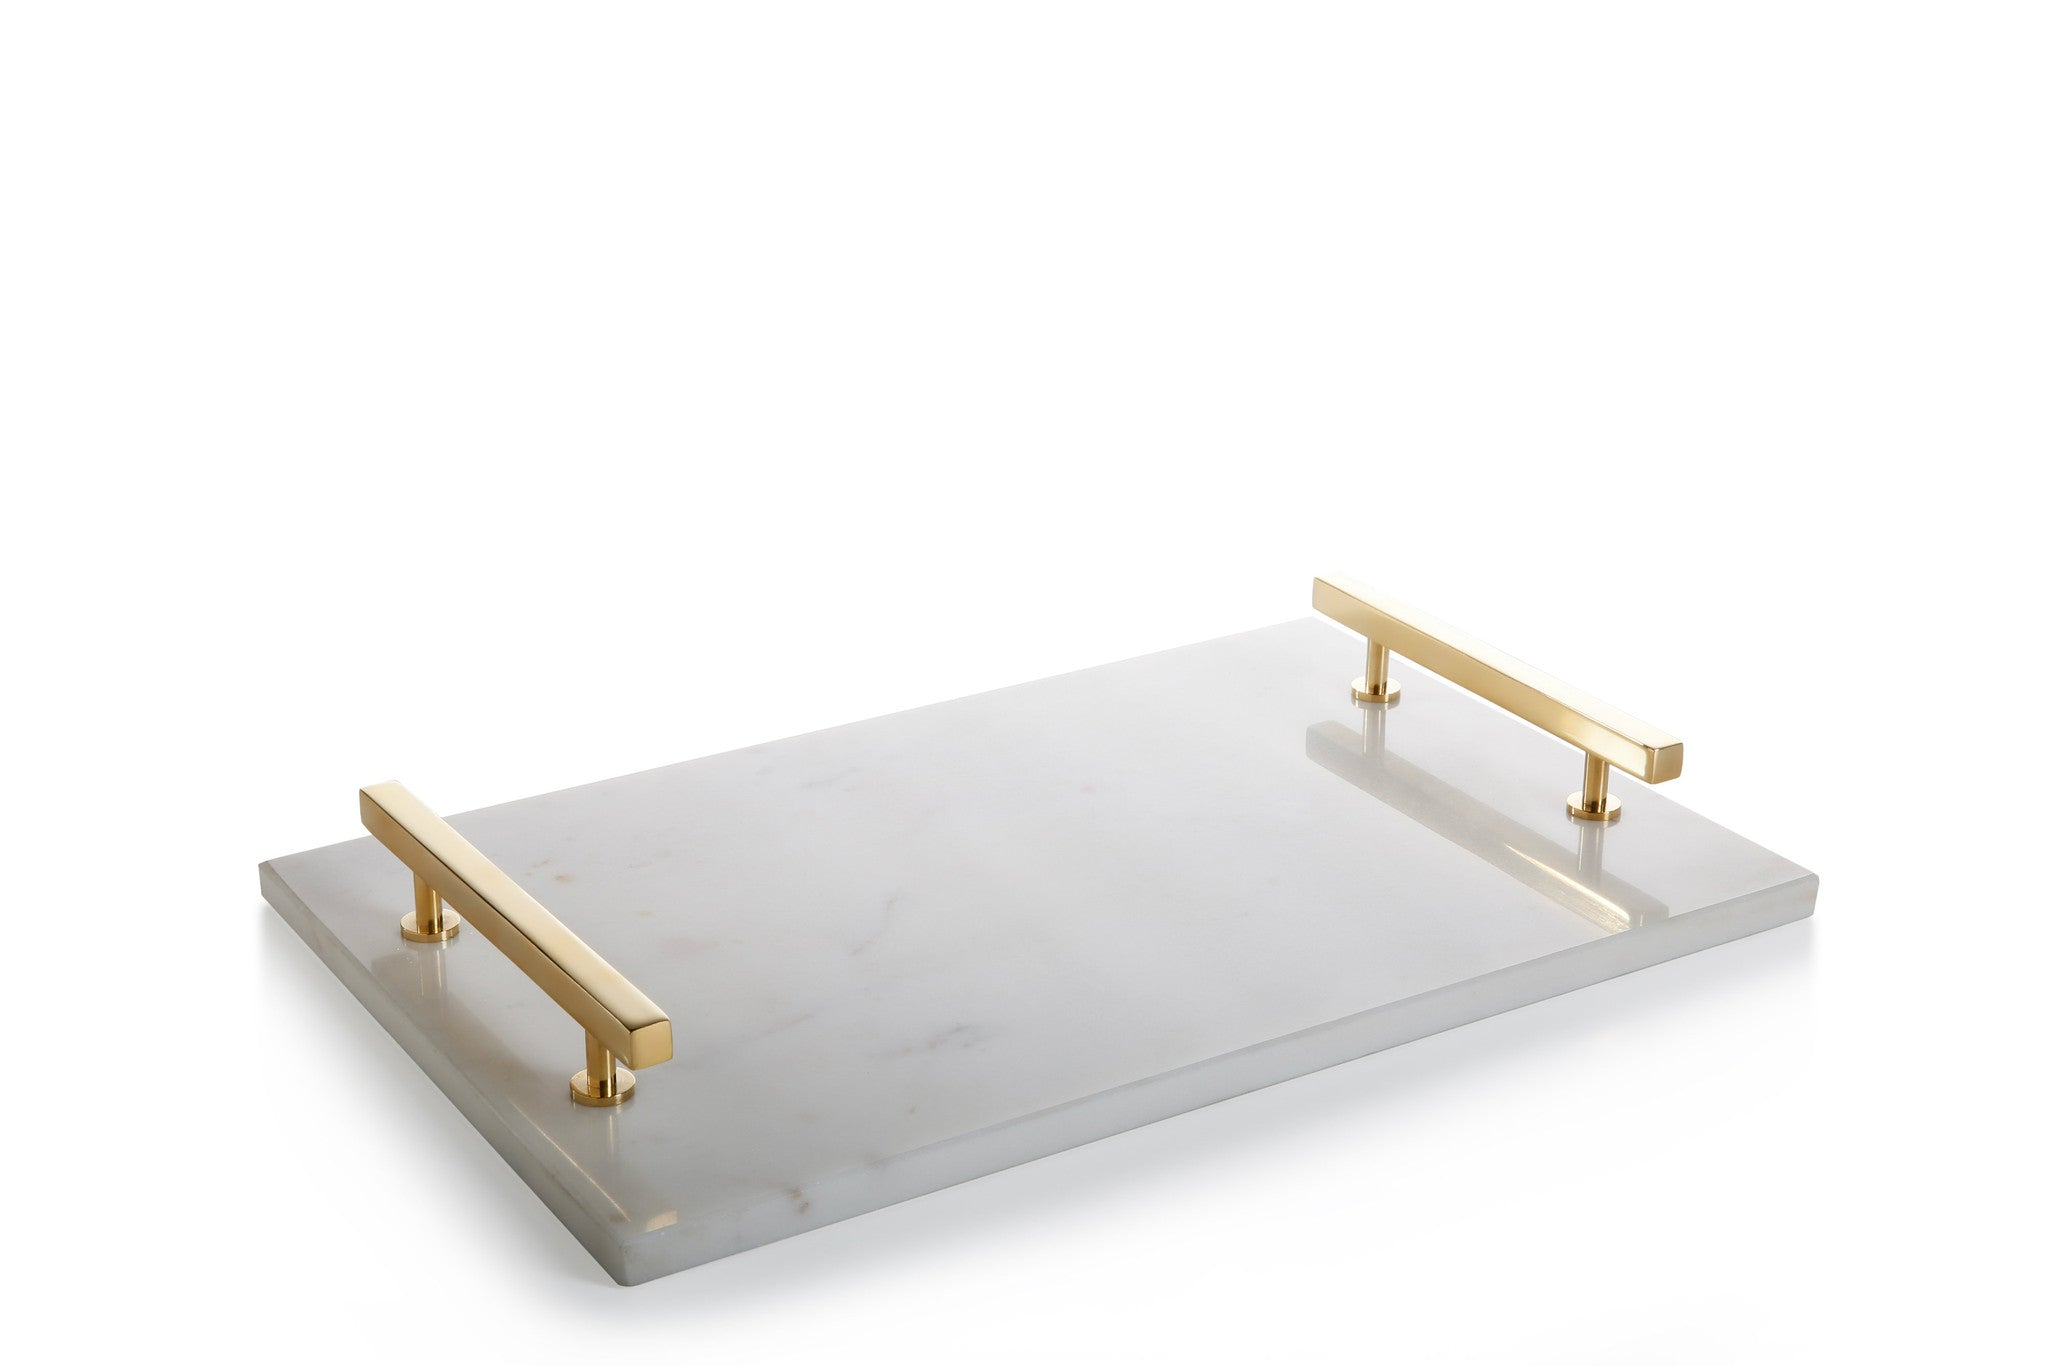 Rectangular Marble Tray with Gold Handles -  - CARLYLE AVENUE - 2